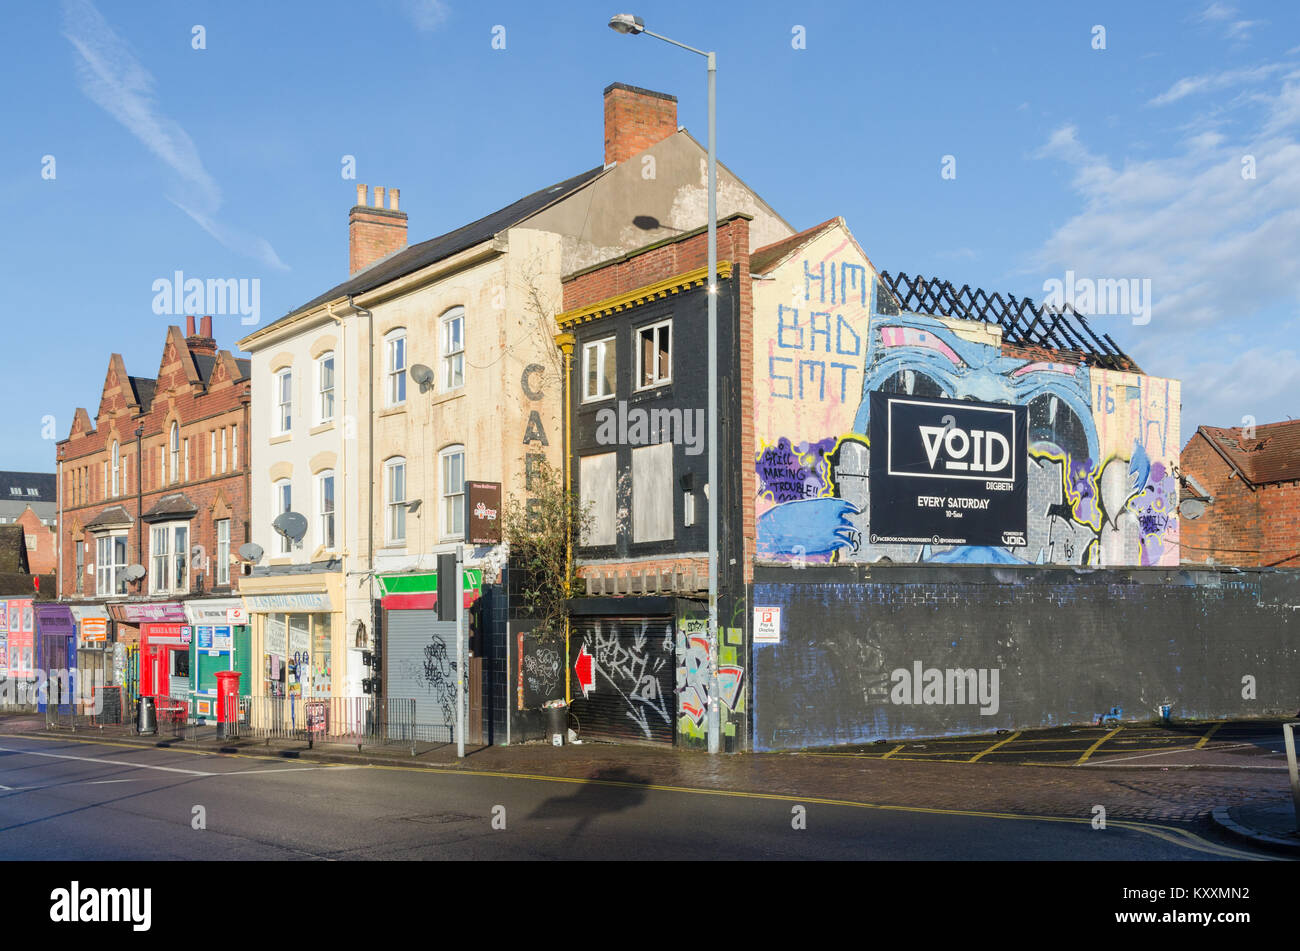 Old buildings in the Digbeth area of Birmingham with street art painted on the walls - Stock Image